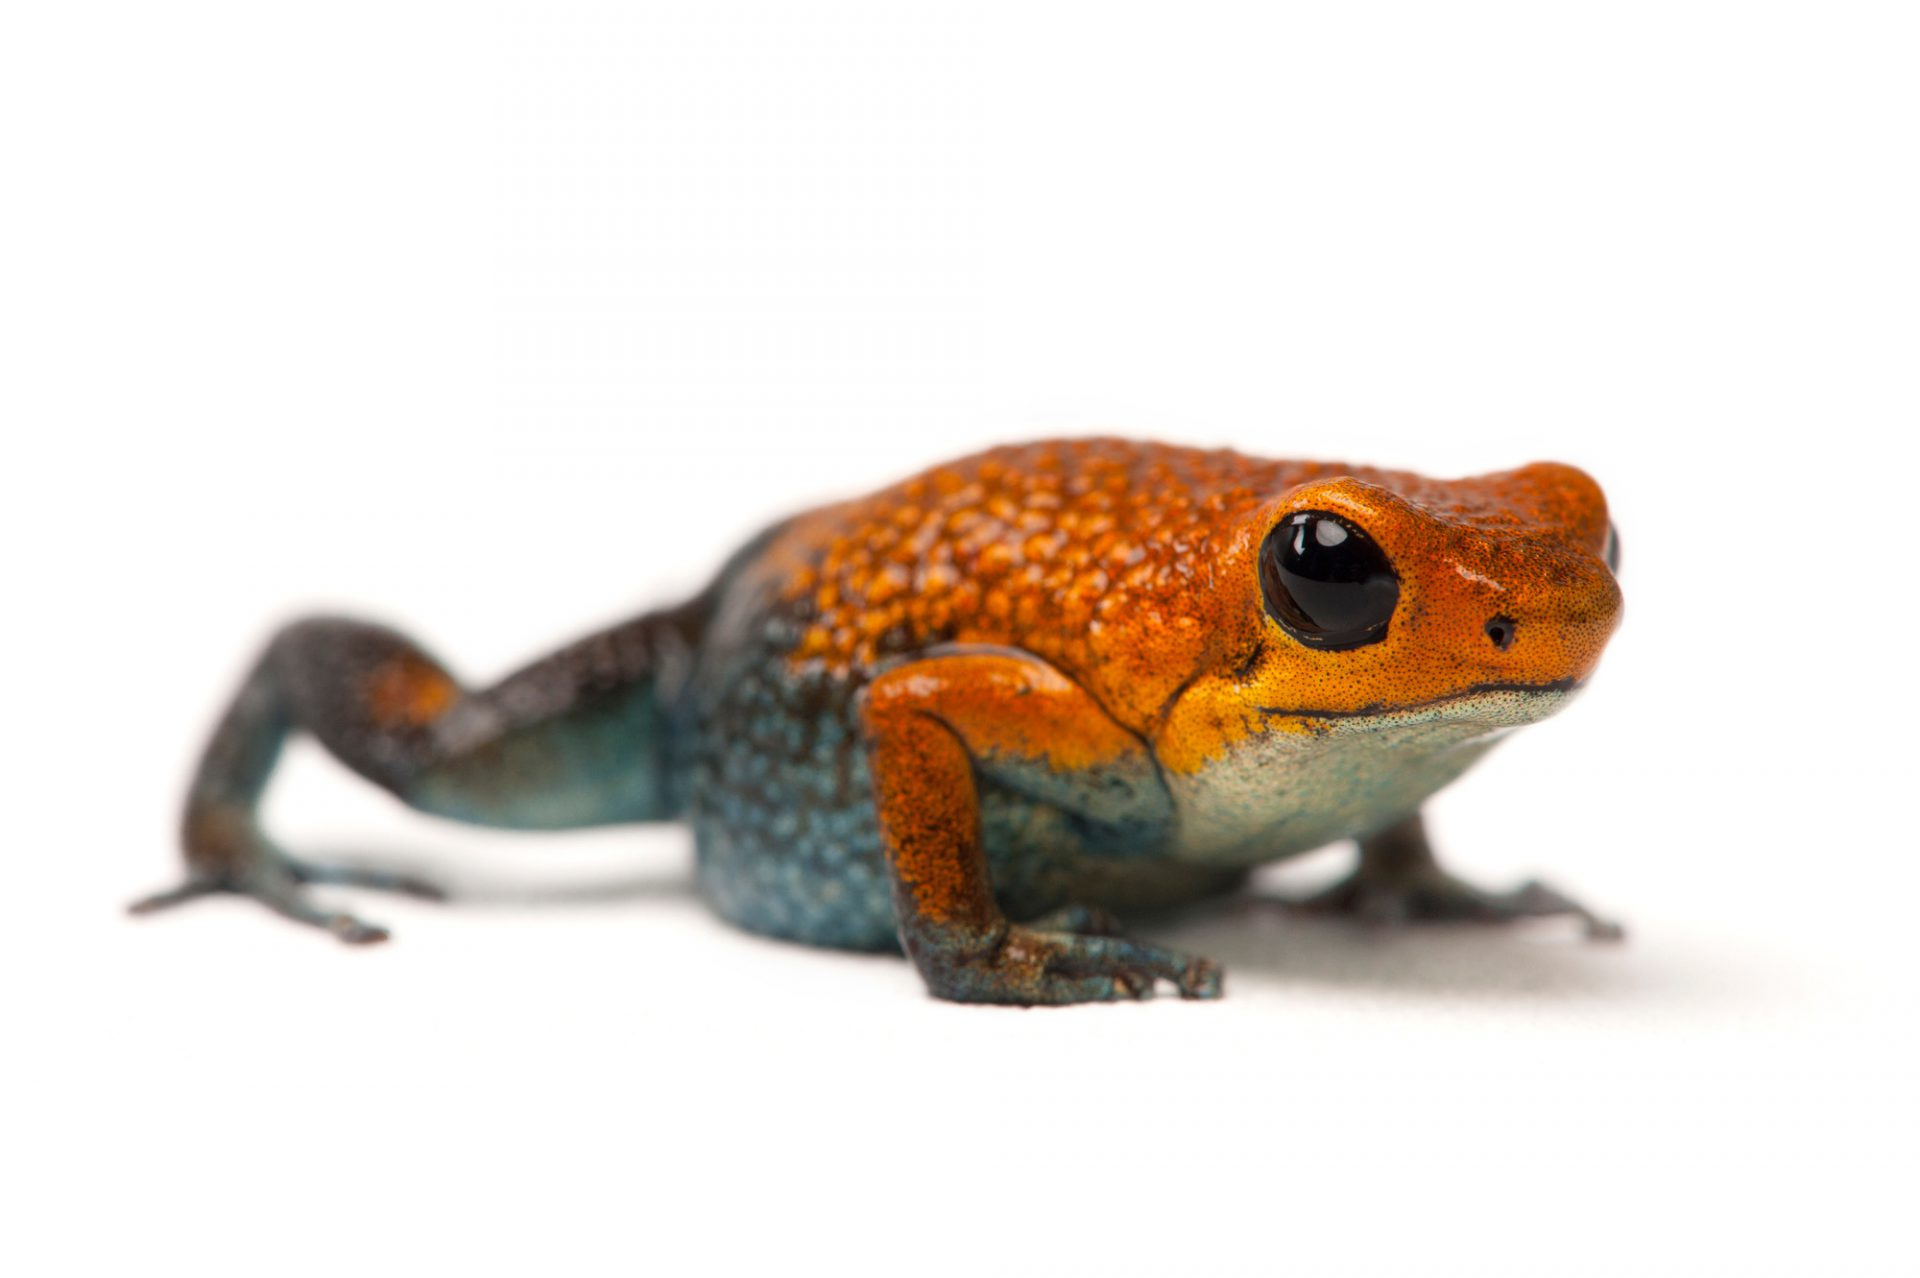 A vulnerable Baru or red morph of the Granular poison frog, Oophaga granulifera.